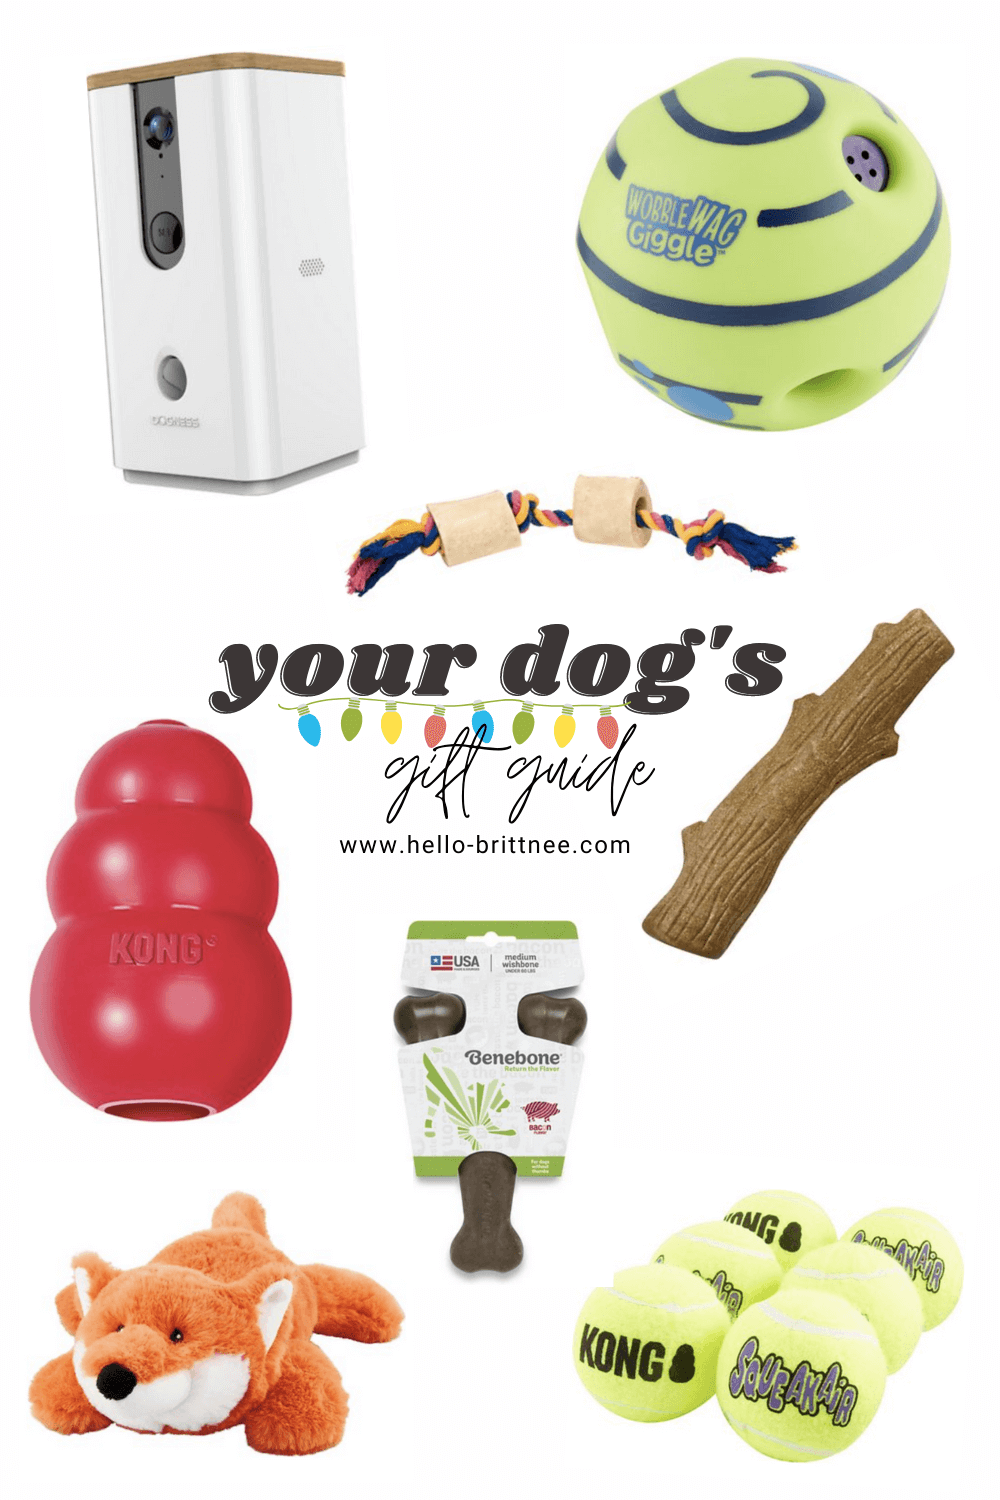 hello-brittnee-dog-gift-guide